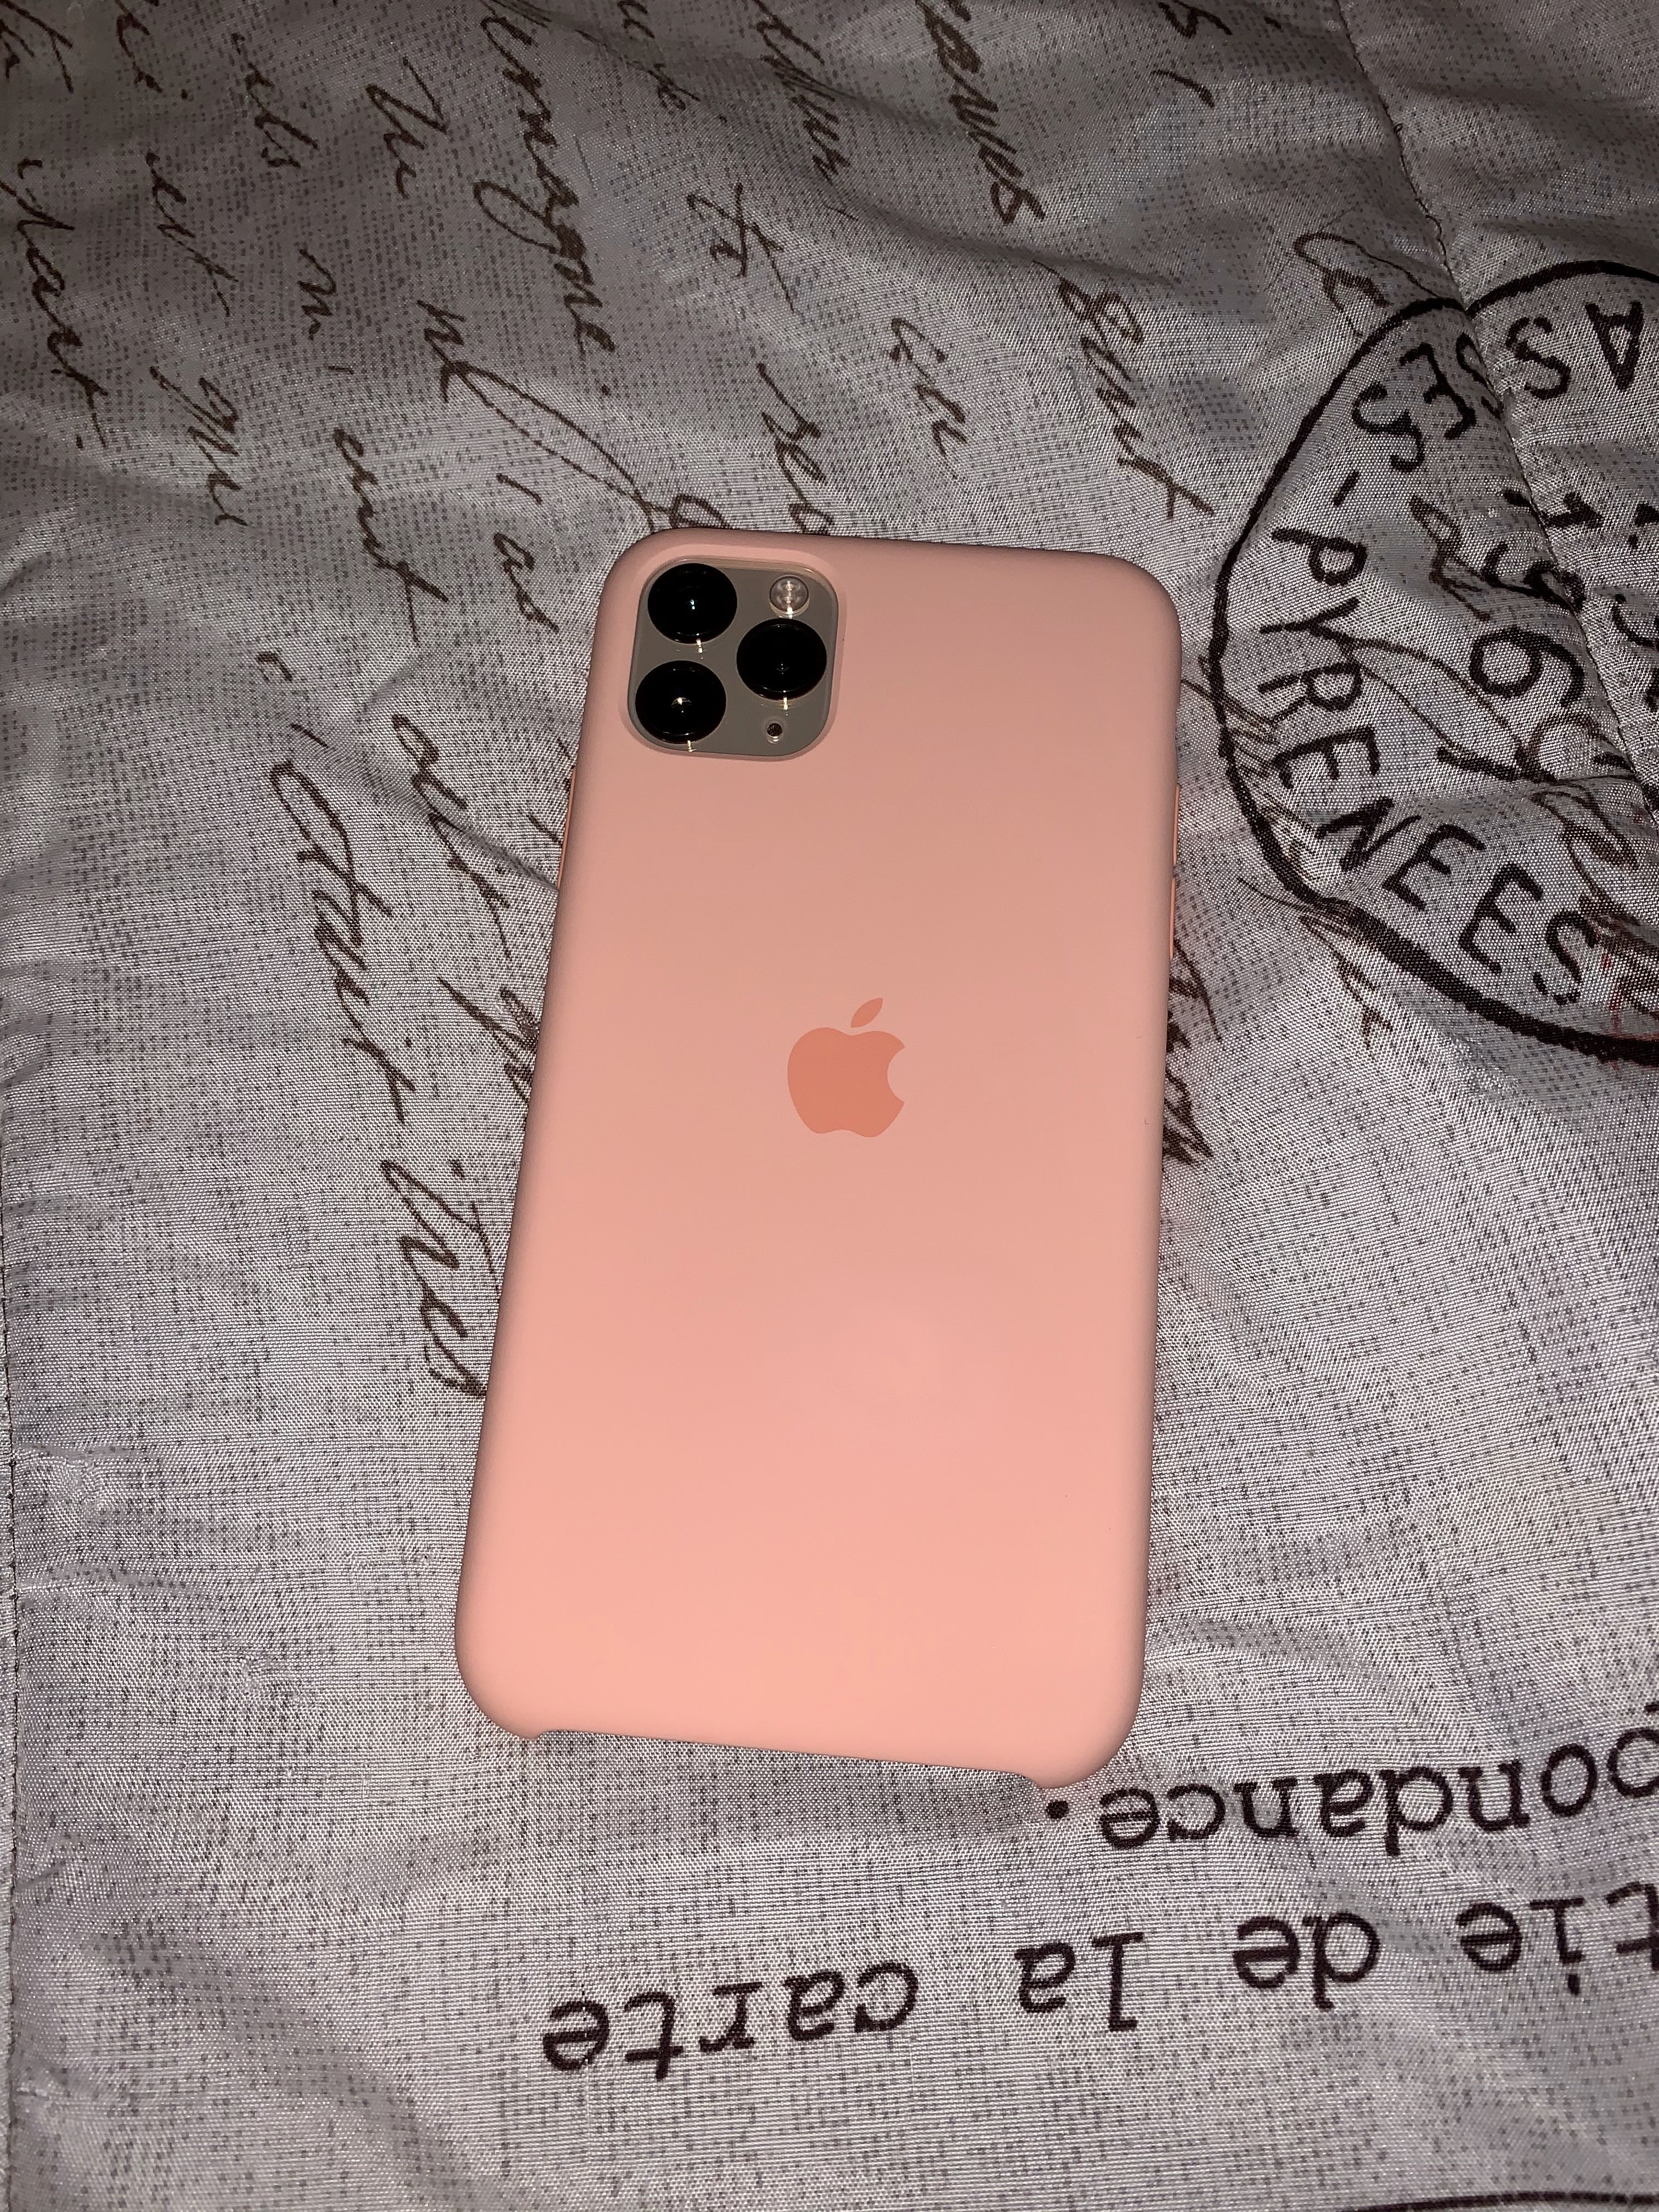 Apple Silicone Case In 2020 Girly Phone Cases Pretty Iphone Cases Silicone Phone Case